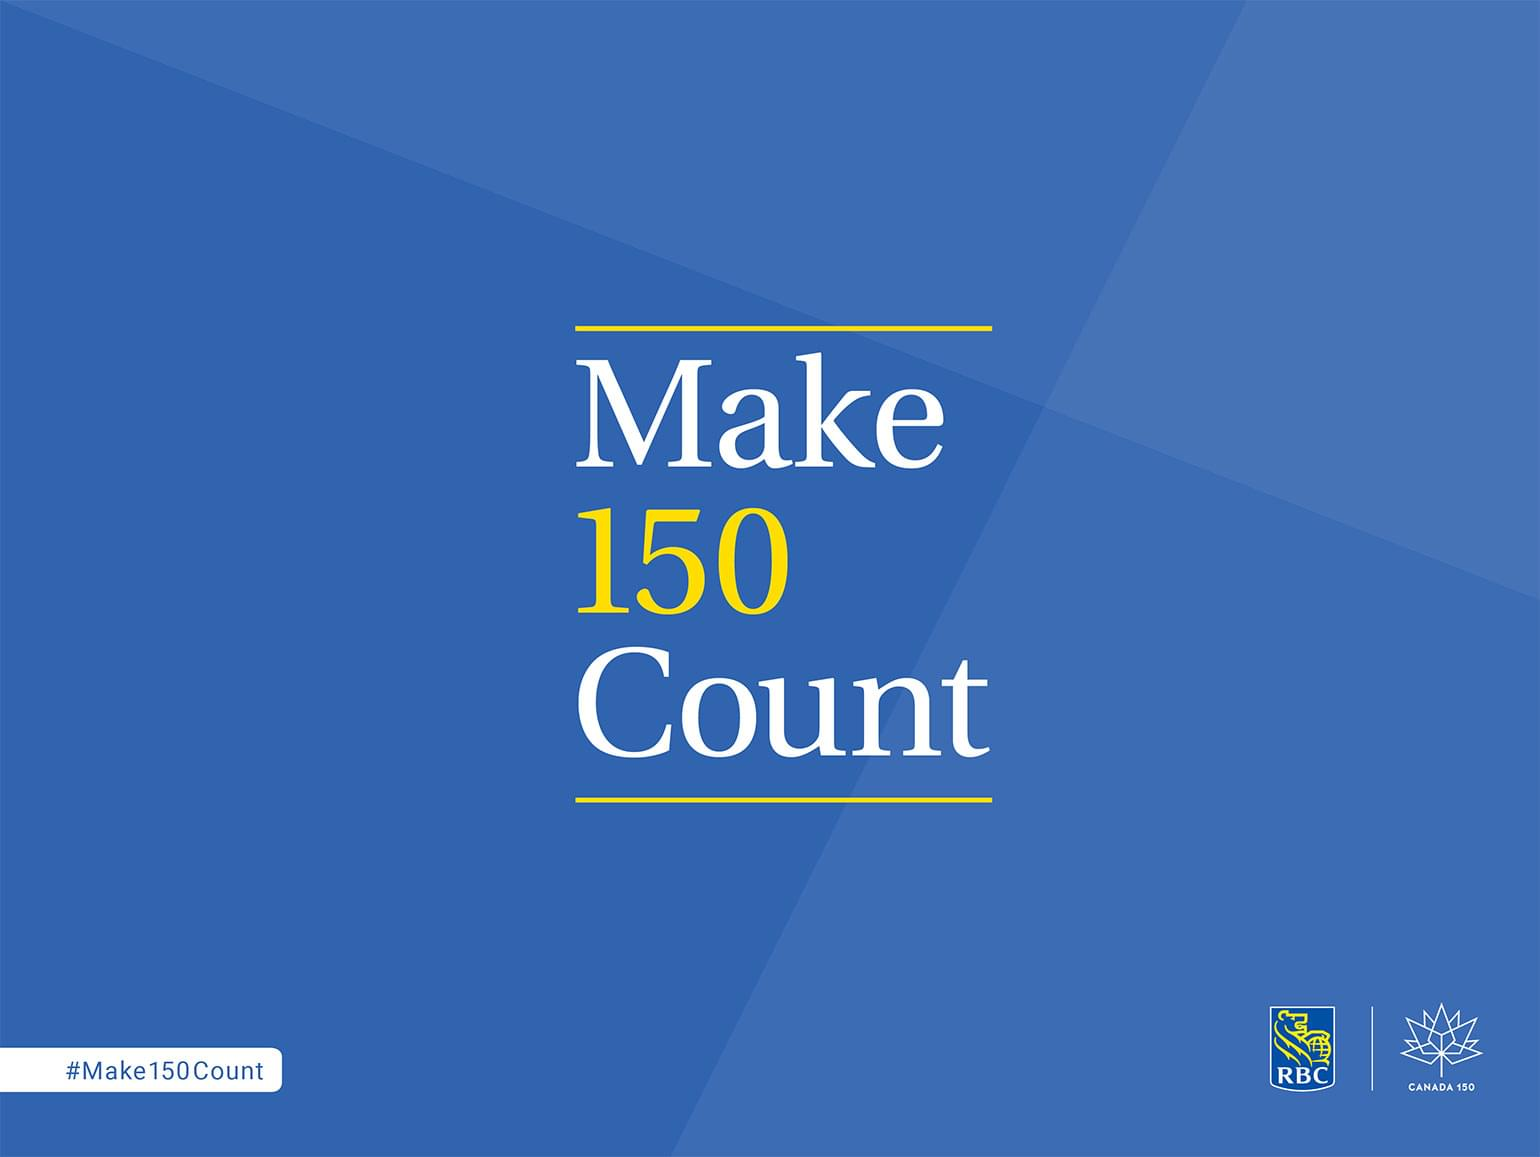 Make 150 Count